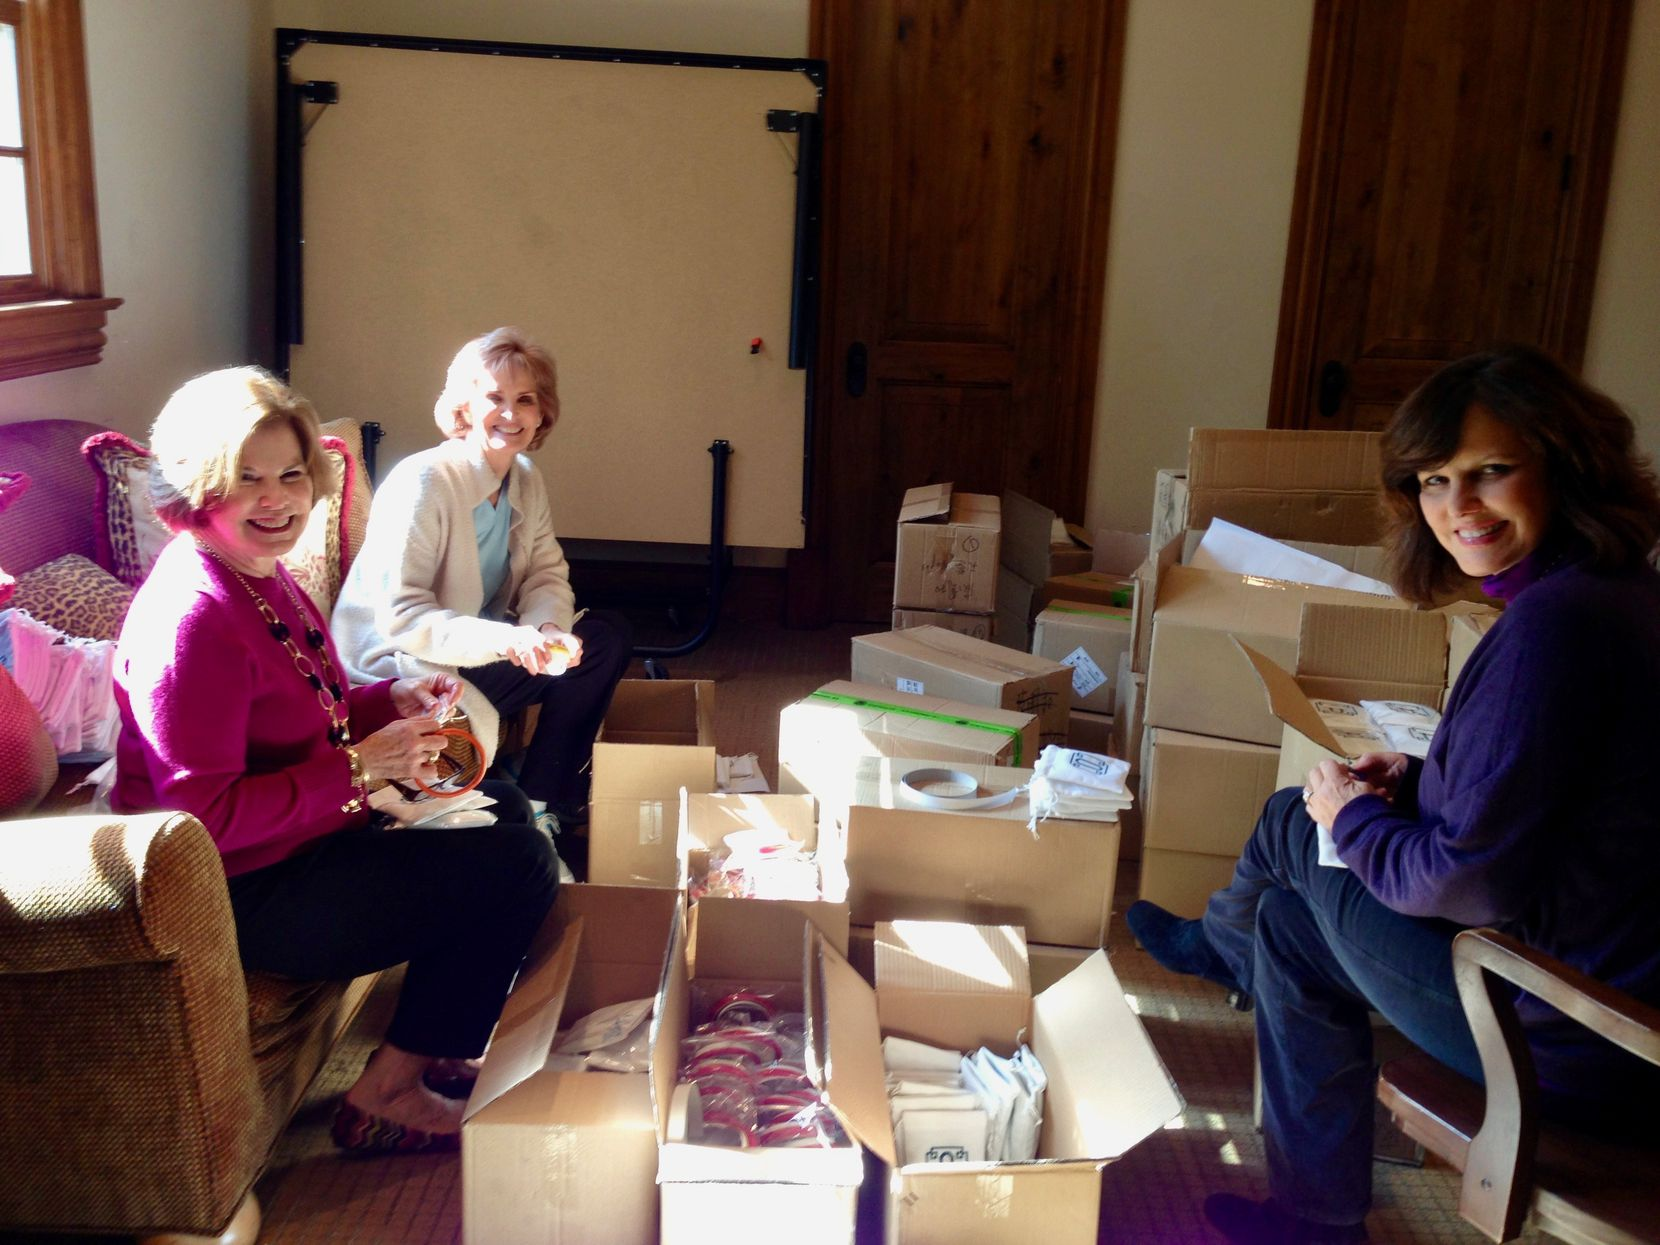 From left: Janie Cooke's mother, Jane Dunne, Caroline Nix's mother, Josie Heath, and their friend Susan Brown helped pack Big O Key Rings in a converted playroom at Nix's Preston Hollow home in November 2012.